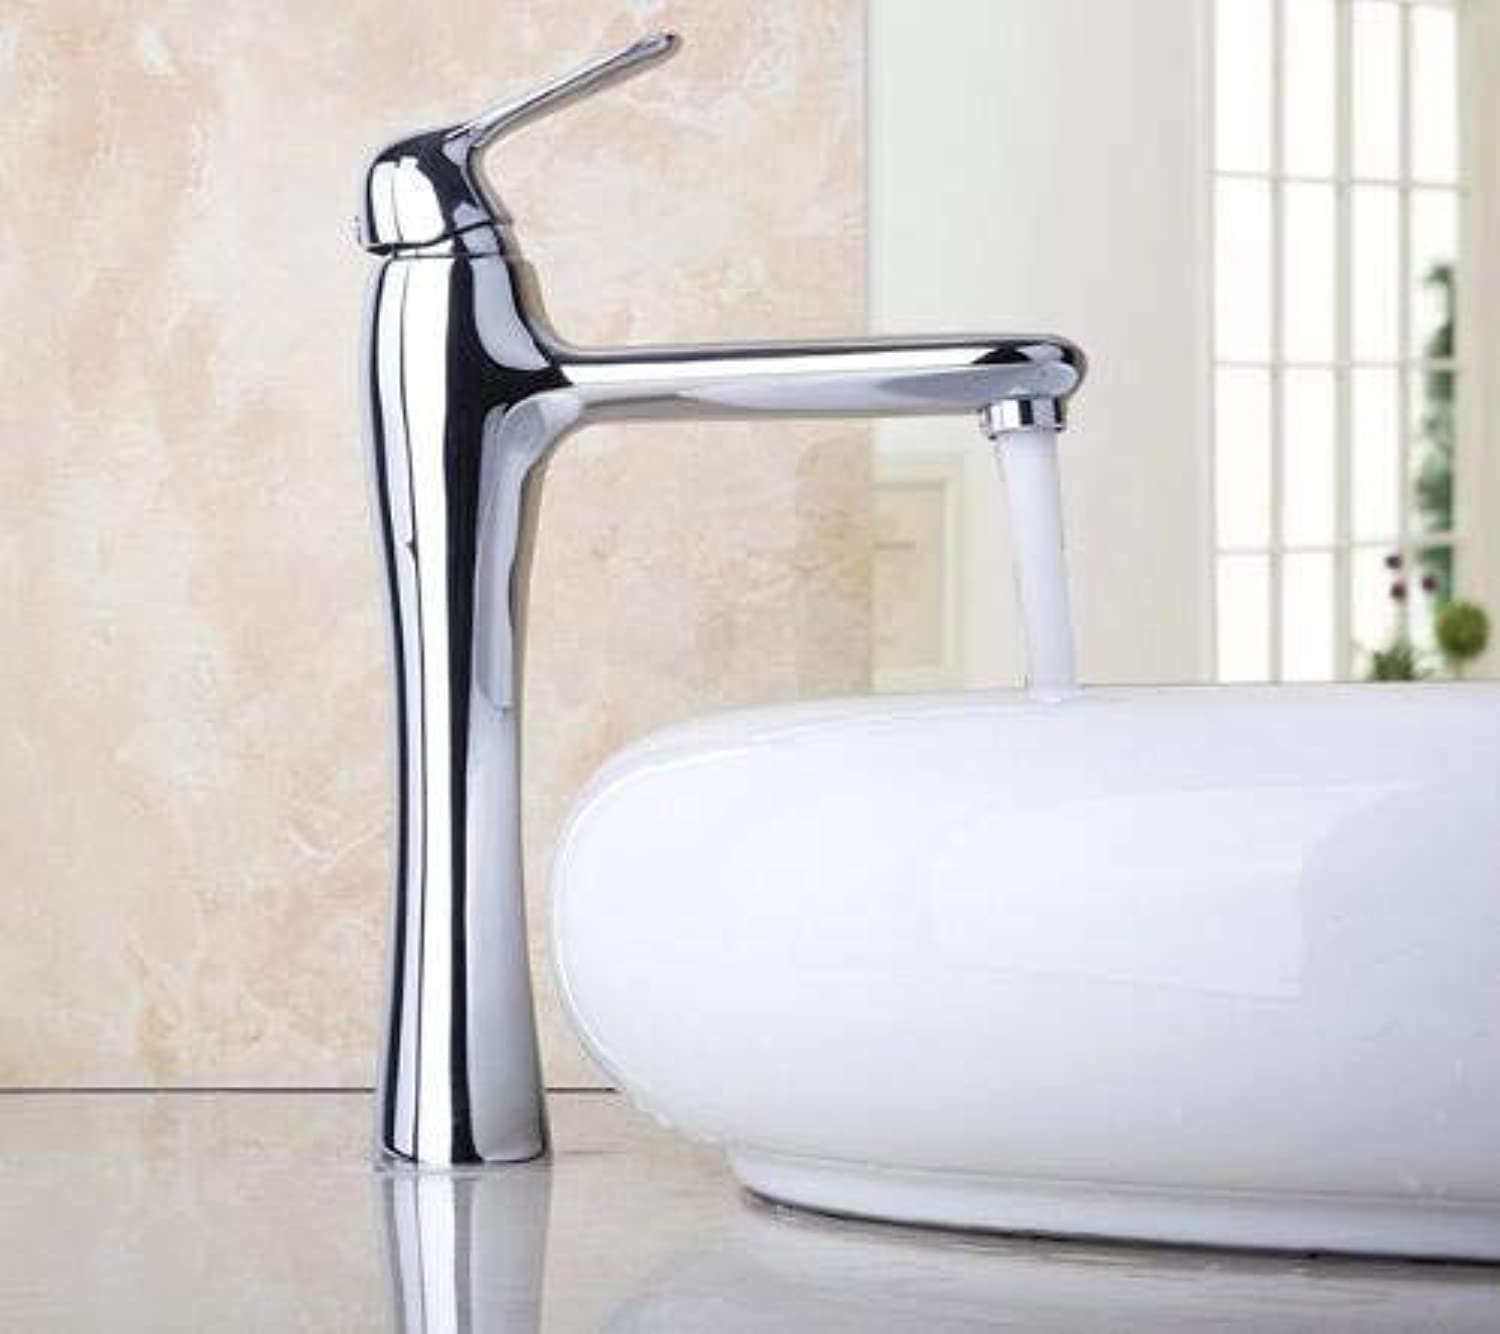 Bathroom Taps Basin Mixer Taps Bathroom Faucet Sinkbathroom Basin Sinks Faucet High Water Taps Deck Mounted Chrome Finished & Single Lever Solid Brass Vanity Sink Basin Faucet ( color   - , Size   - )